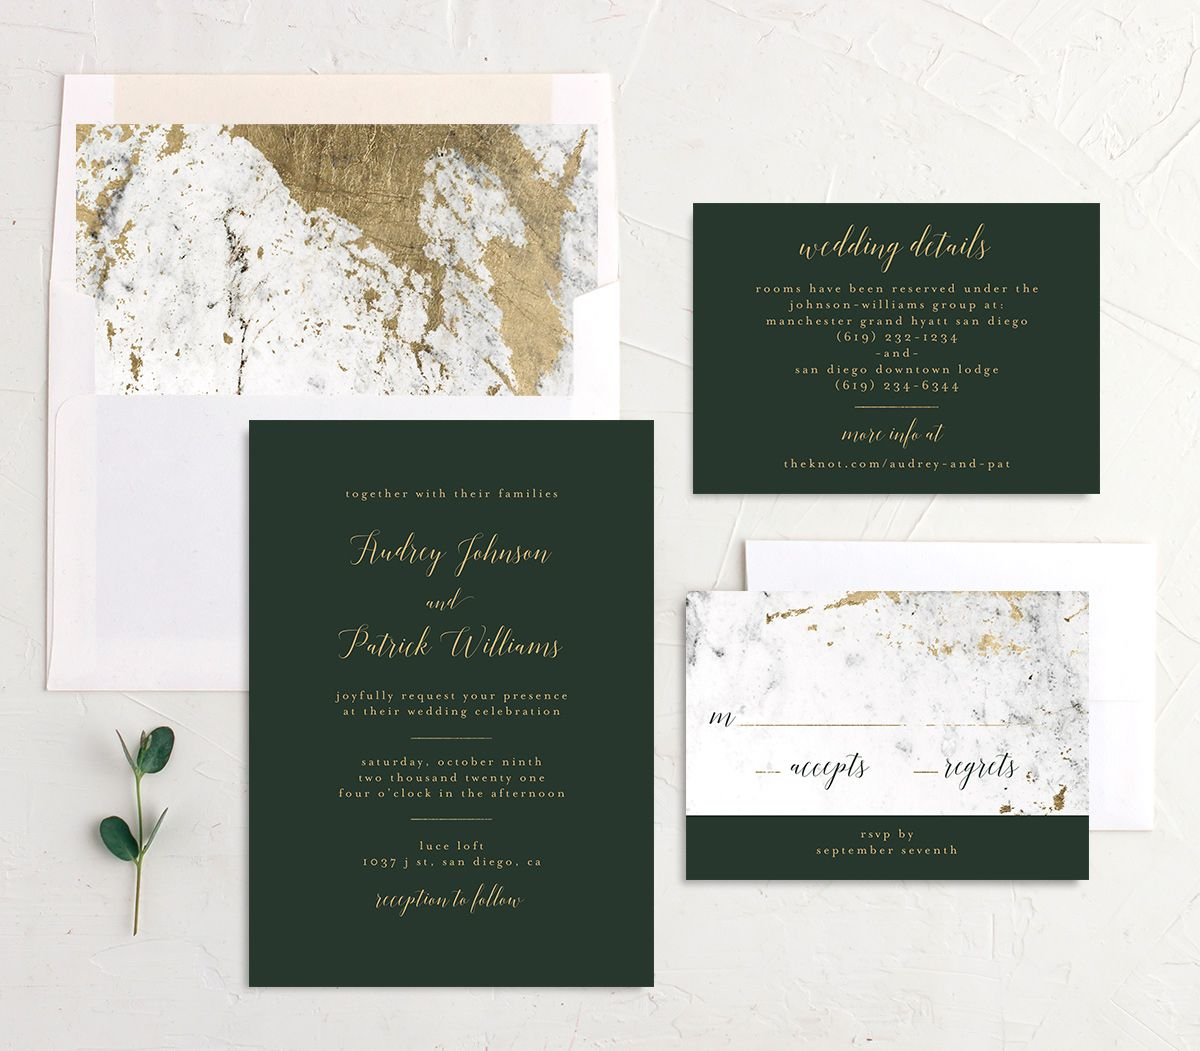 Marble and Gold Wedding Invitation Suite shown in green